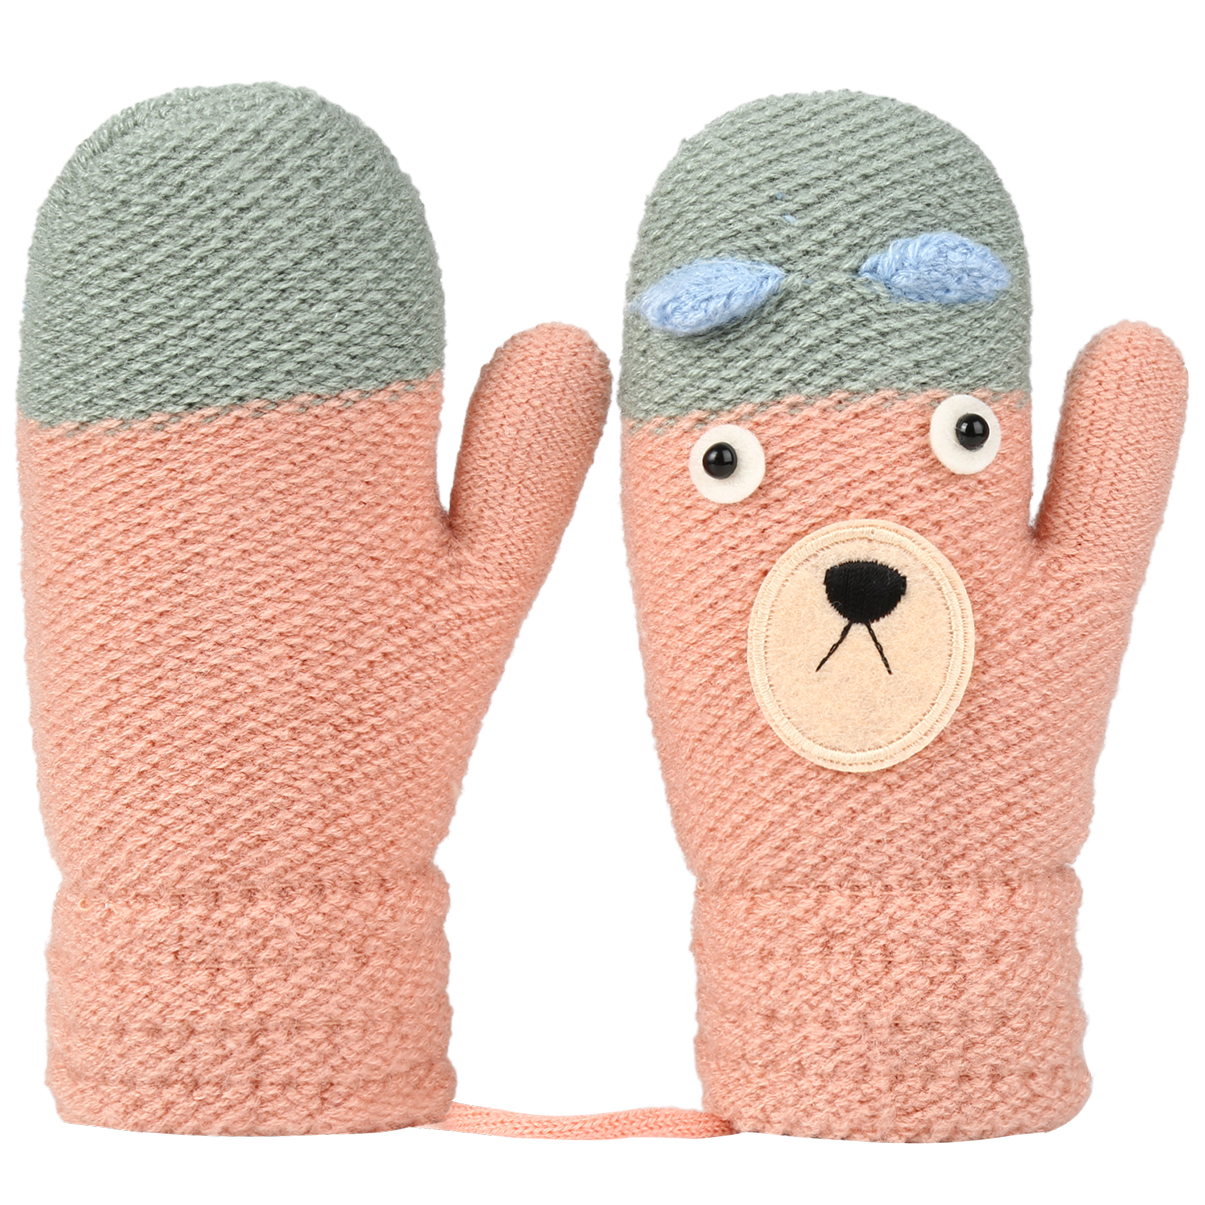 4 Colors Baby Hanging Thicken Warm Mittens Cartoon Knitting Kids Gloves